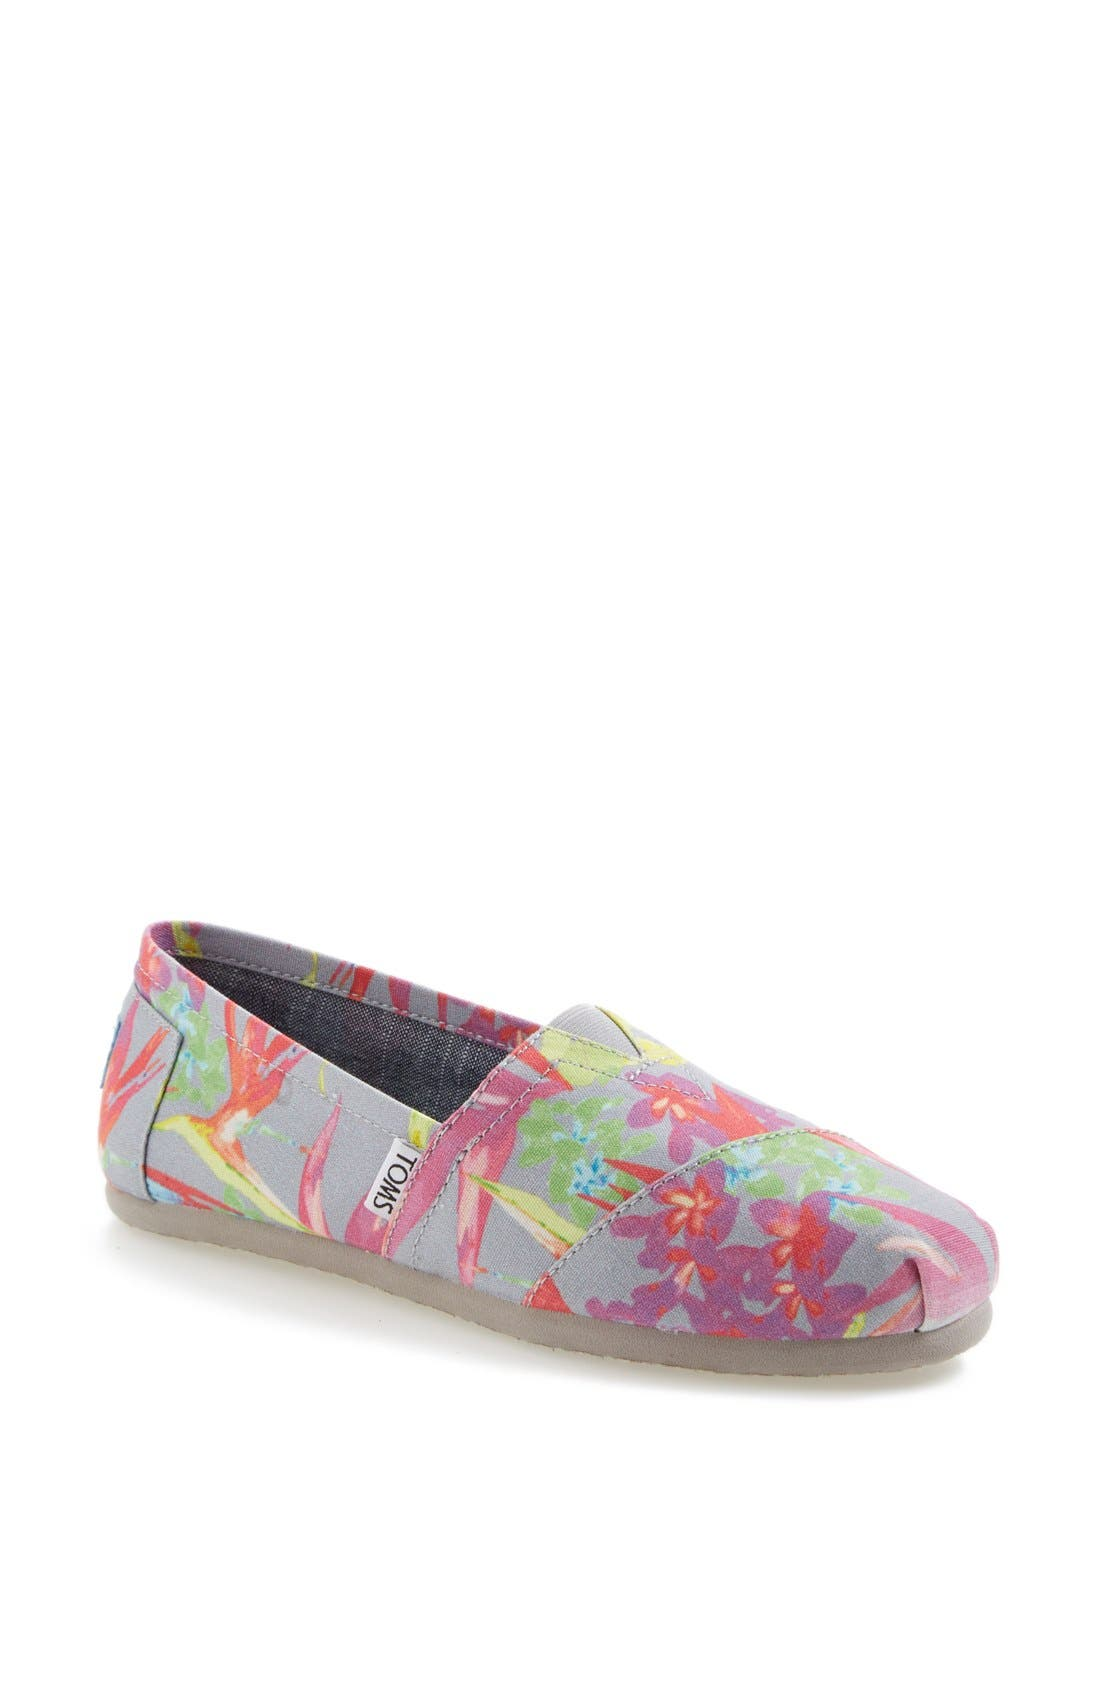 TOMS 'Classic - Birds of Paradise' Slip-On, Main, color, 020